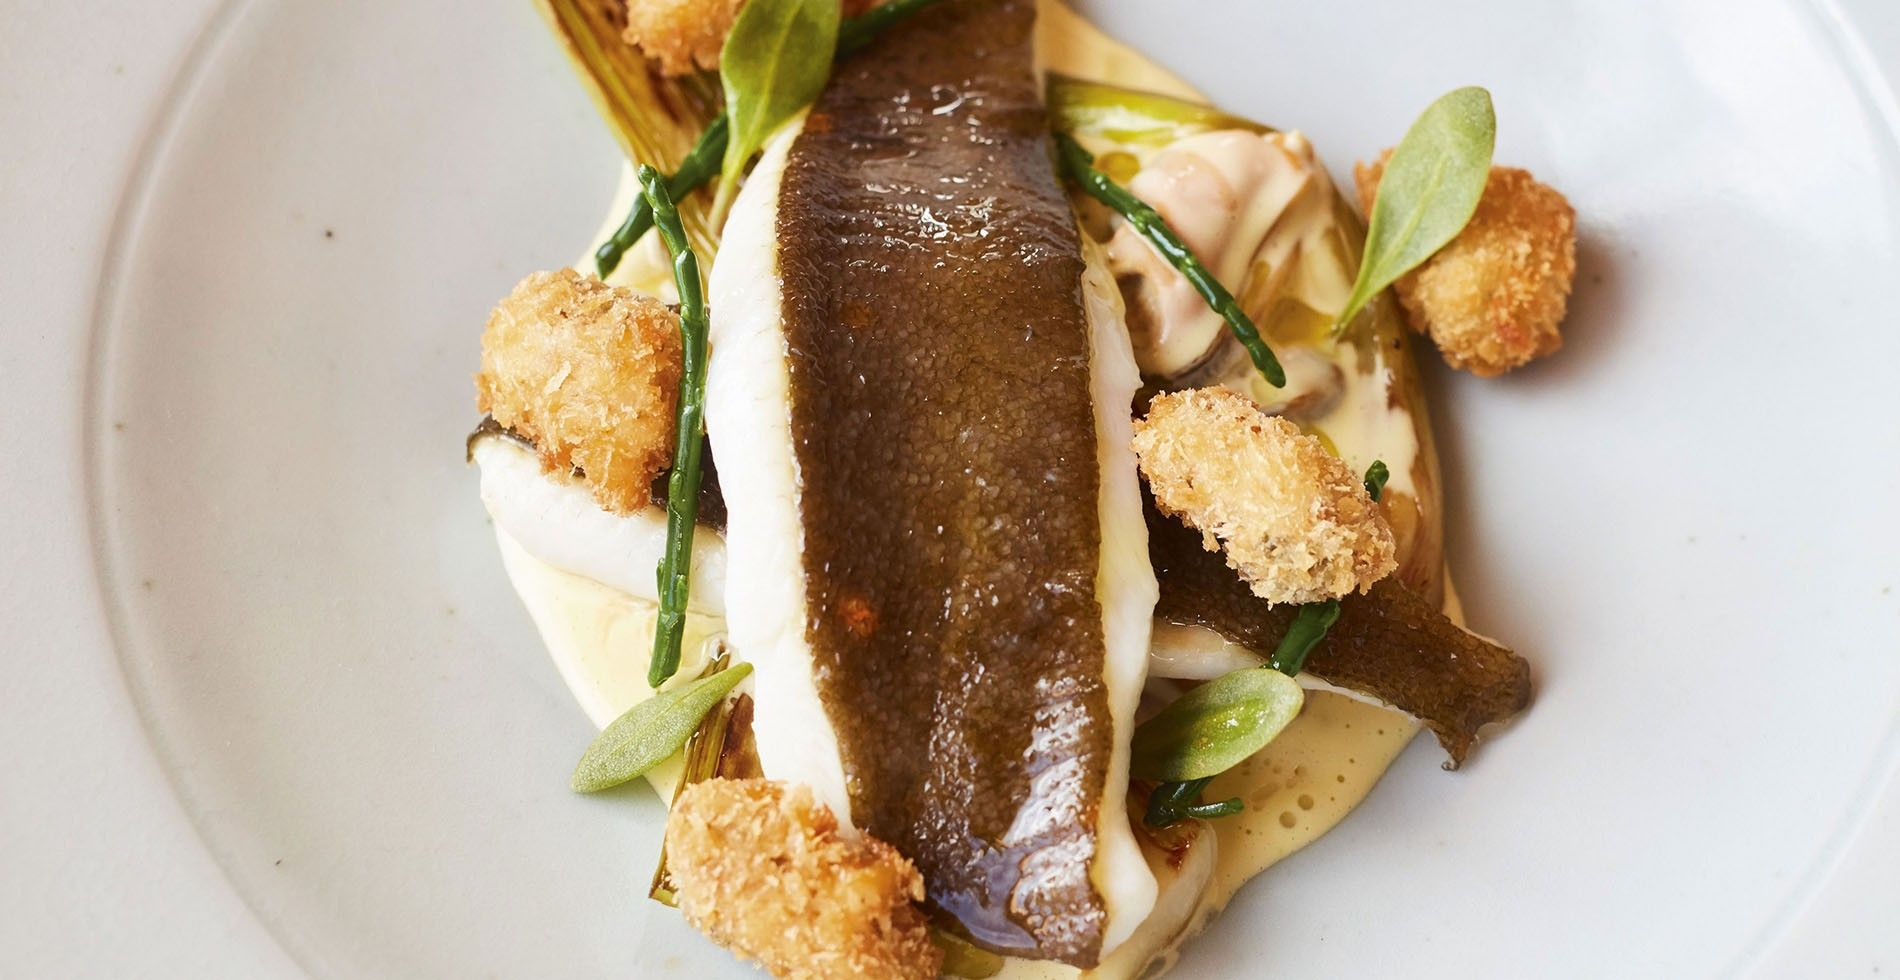 Plaice with mussels and samphire.